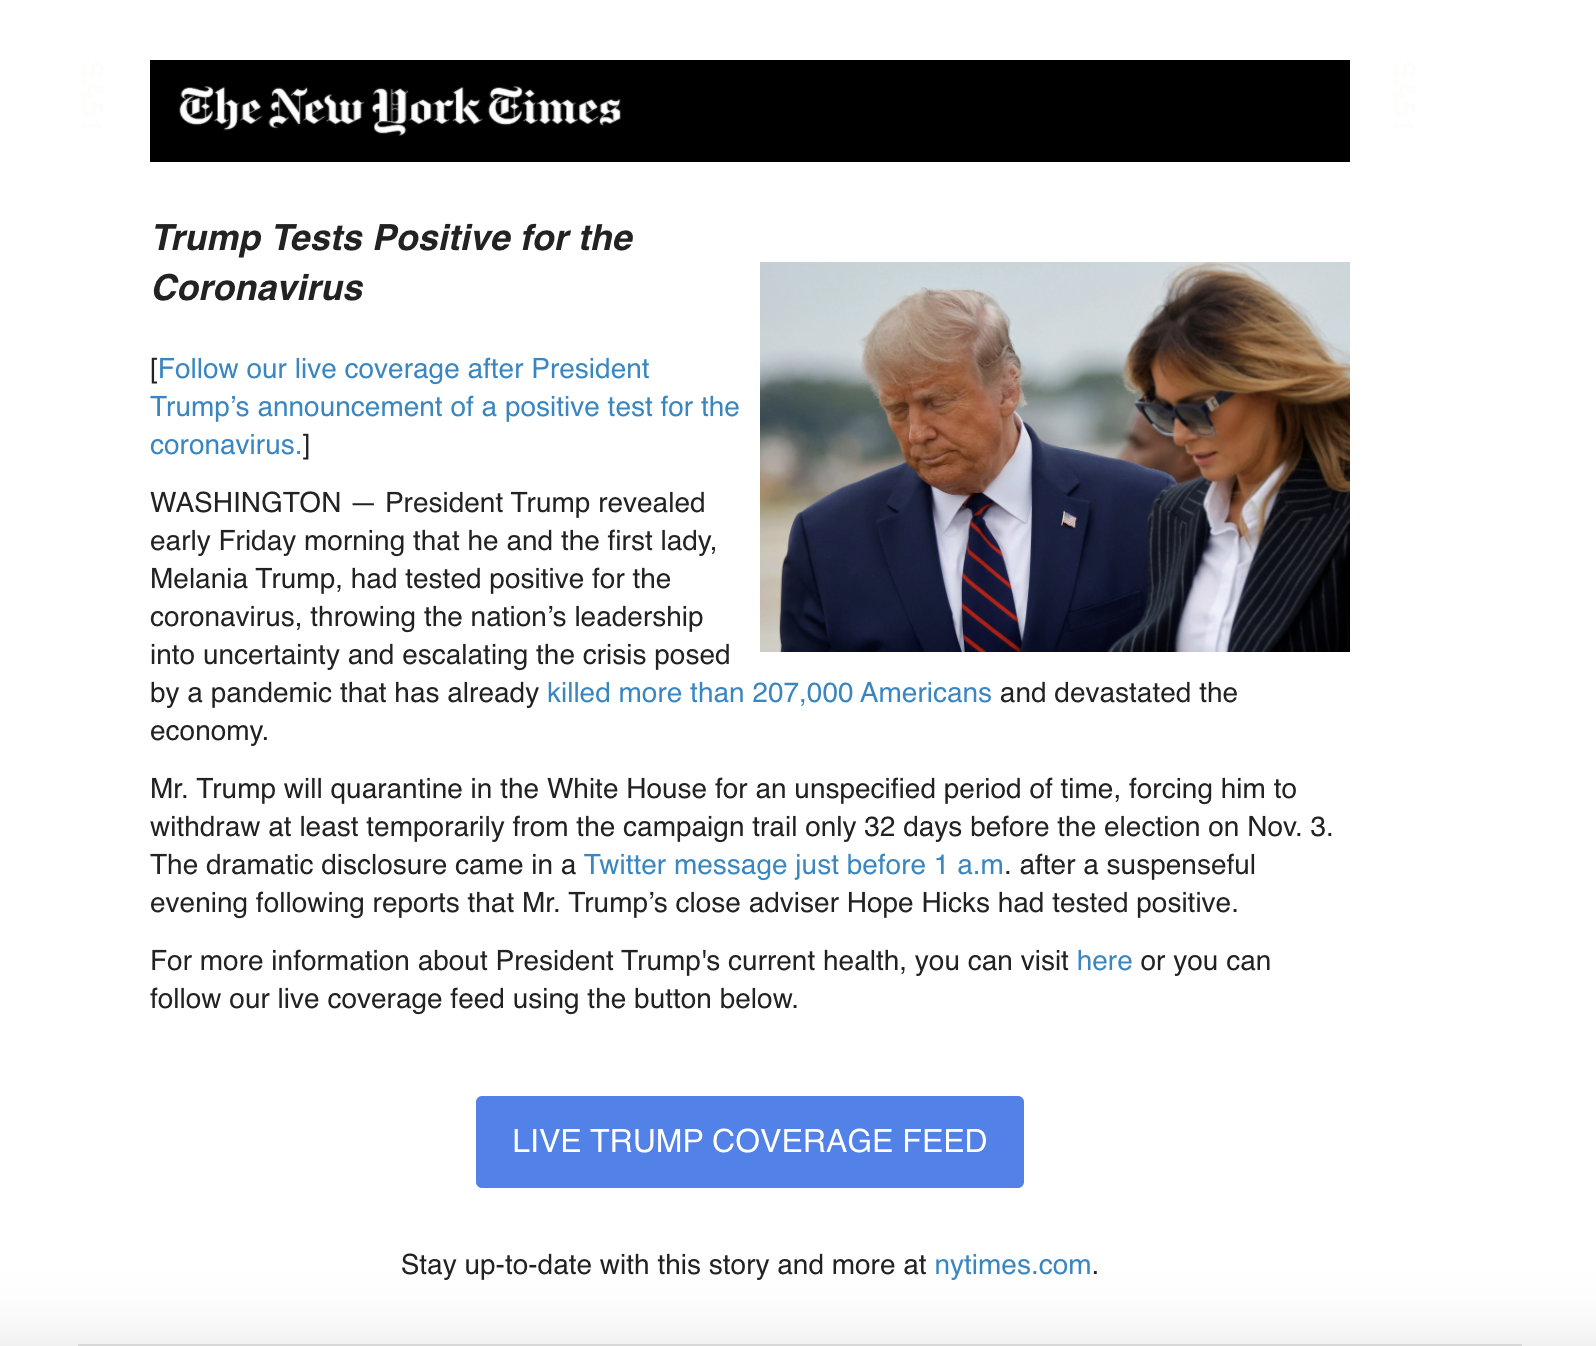 [Heads Up] Scam of The Week: Watch Out For Trump COVID Disinformation